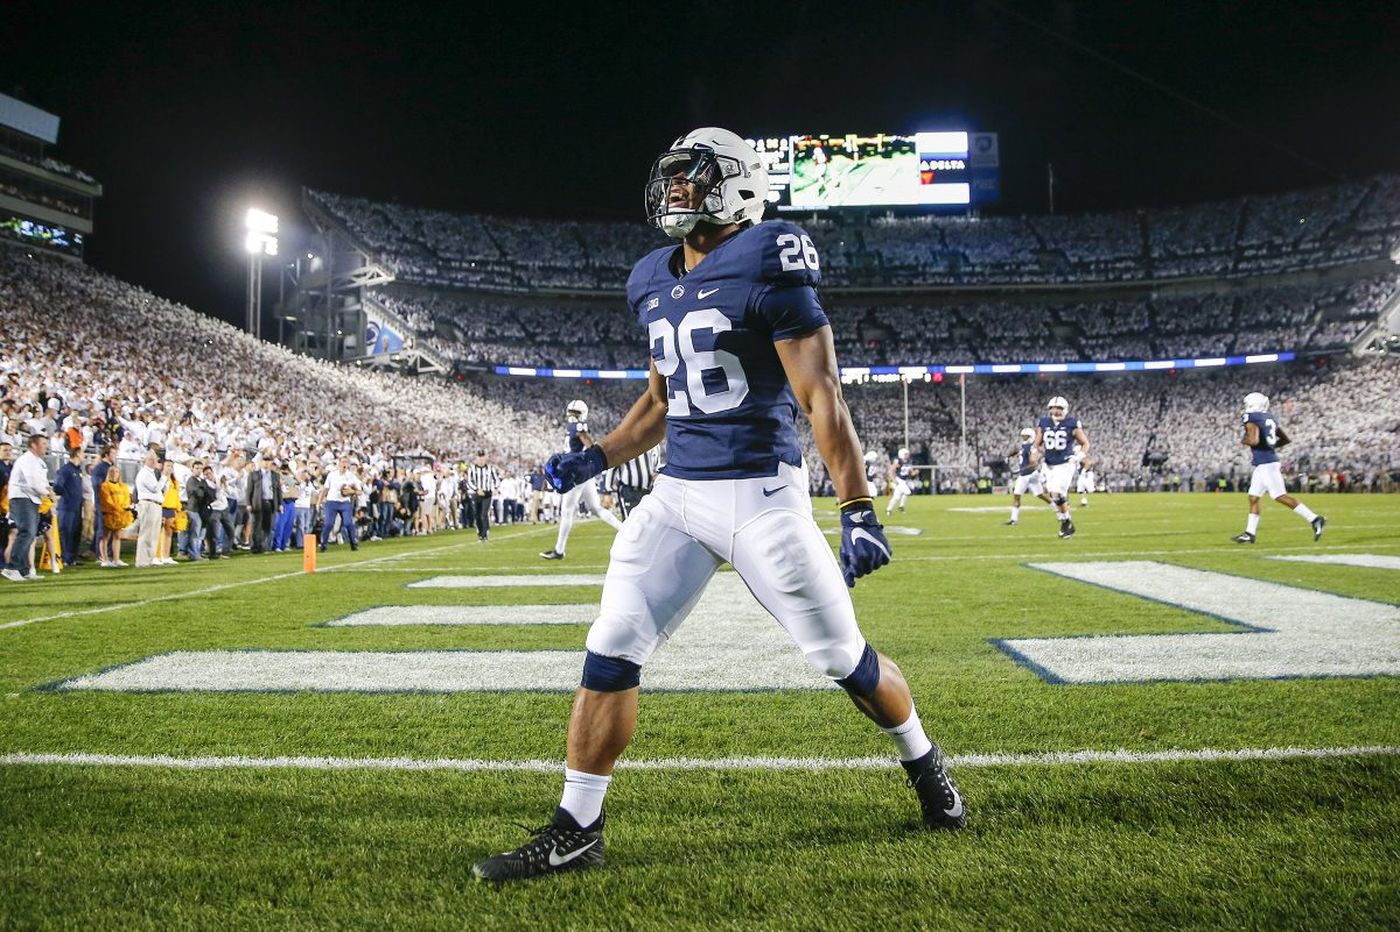 Saquon Barkley officially declares for the NFL Draft